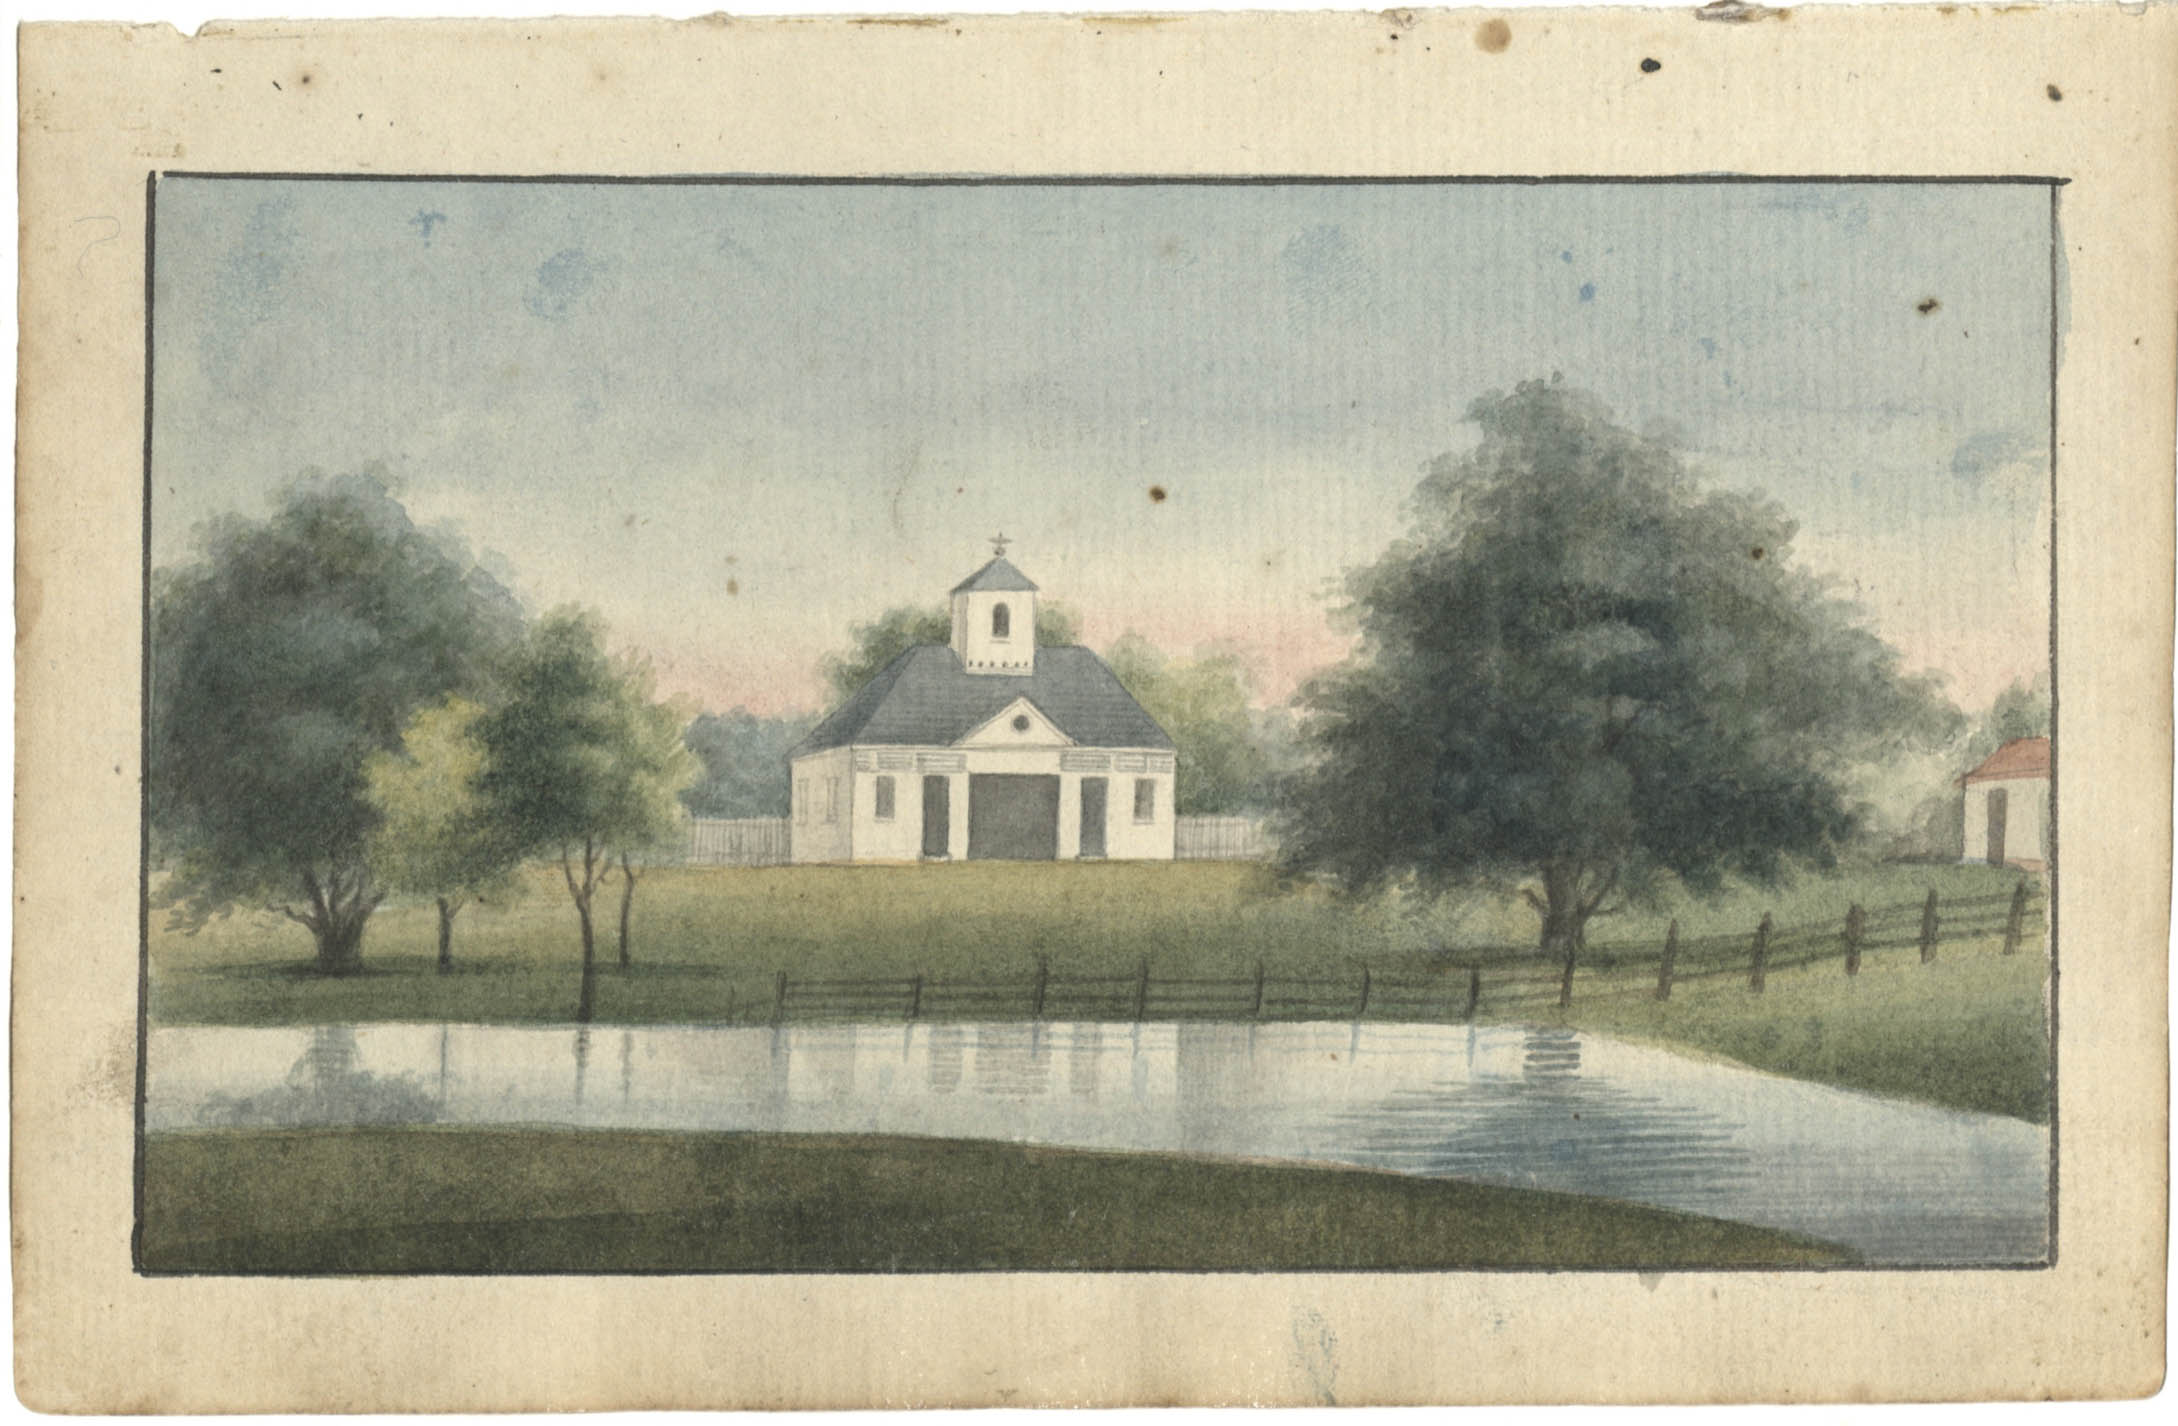 Landscape painting, white church with bell tower